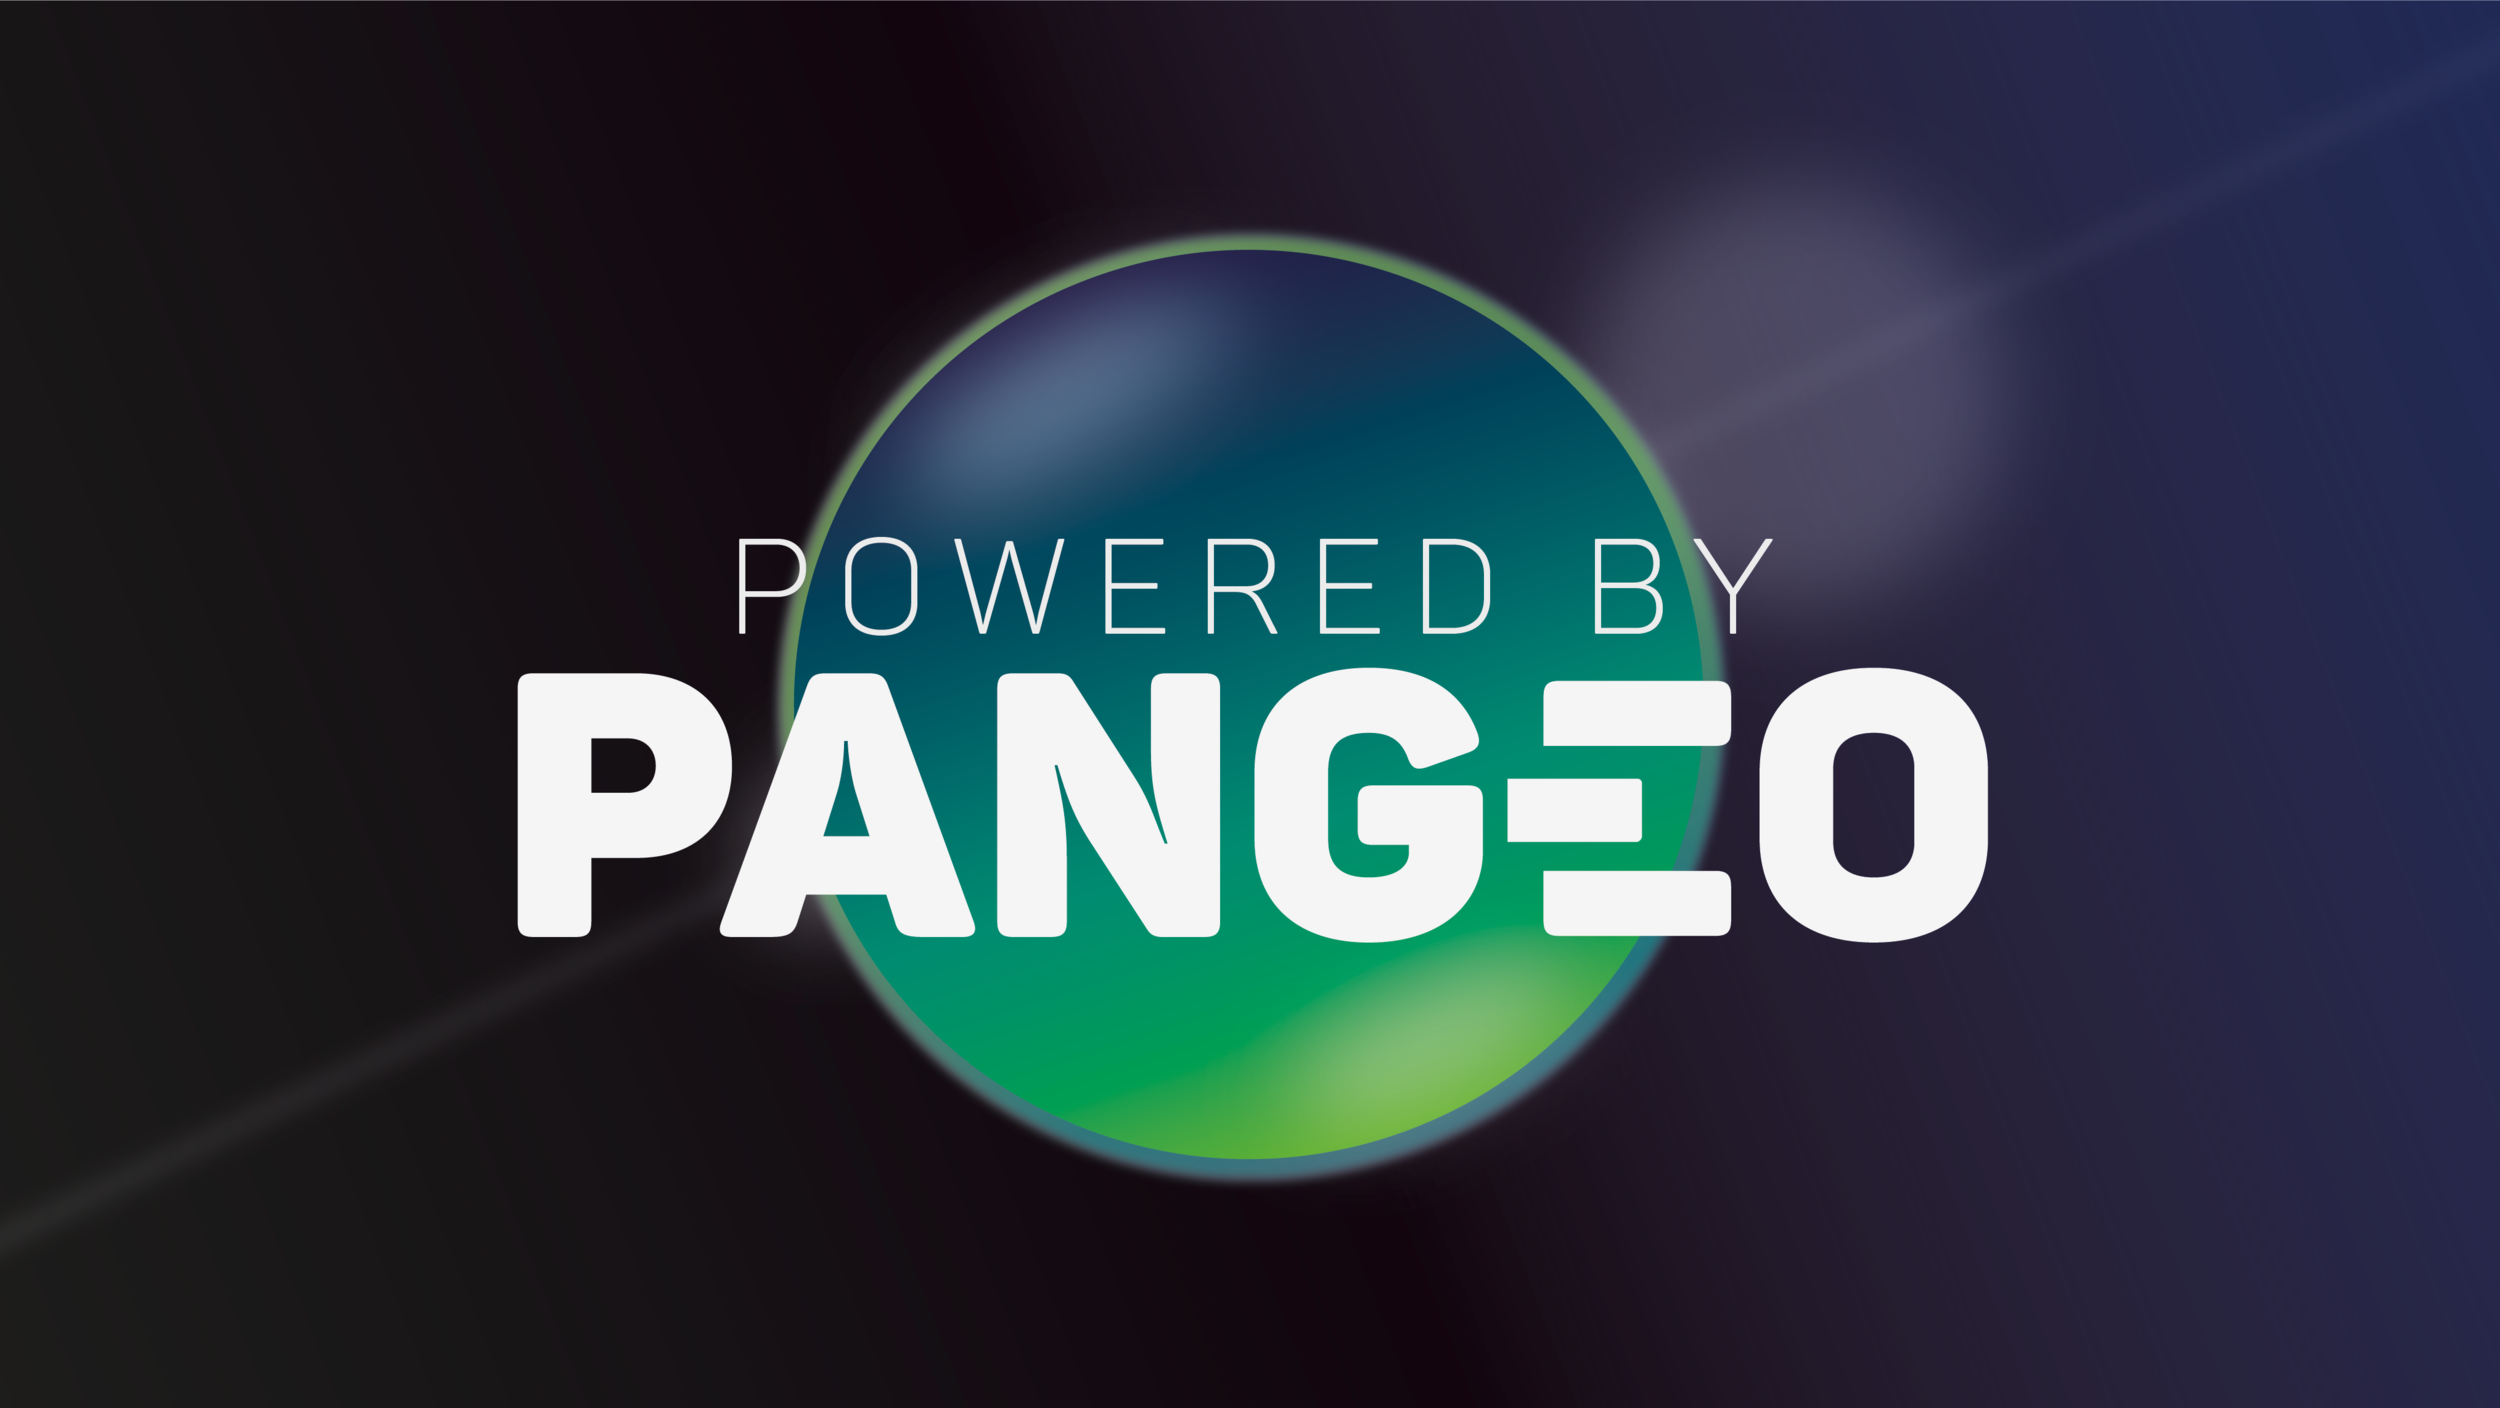 powered-by-pangeo@300x-100.jpg